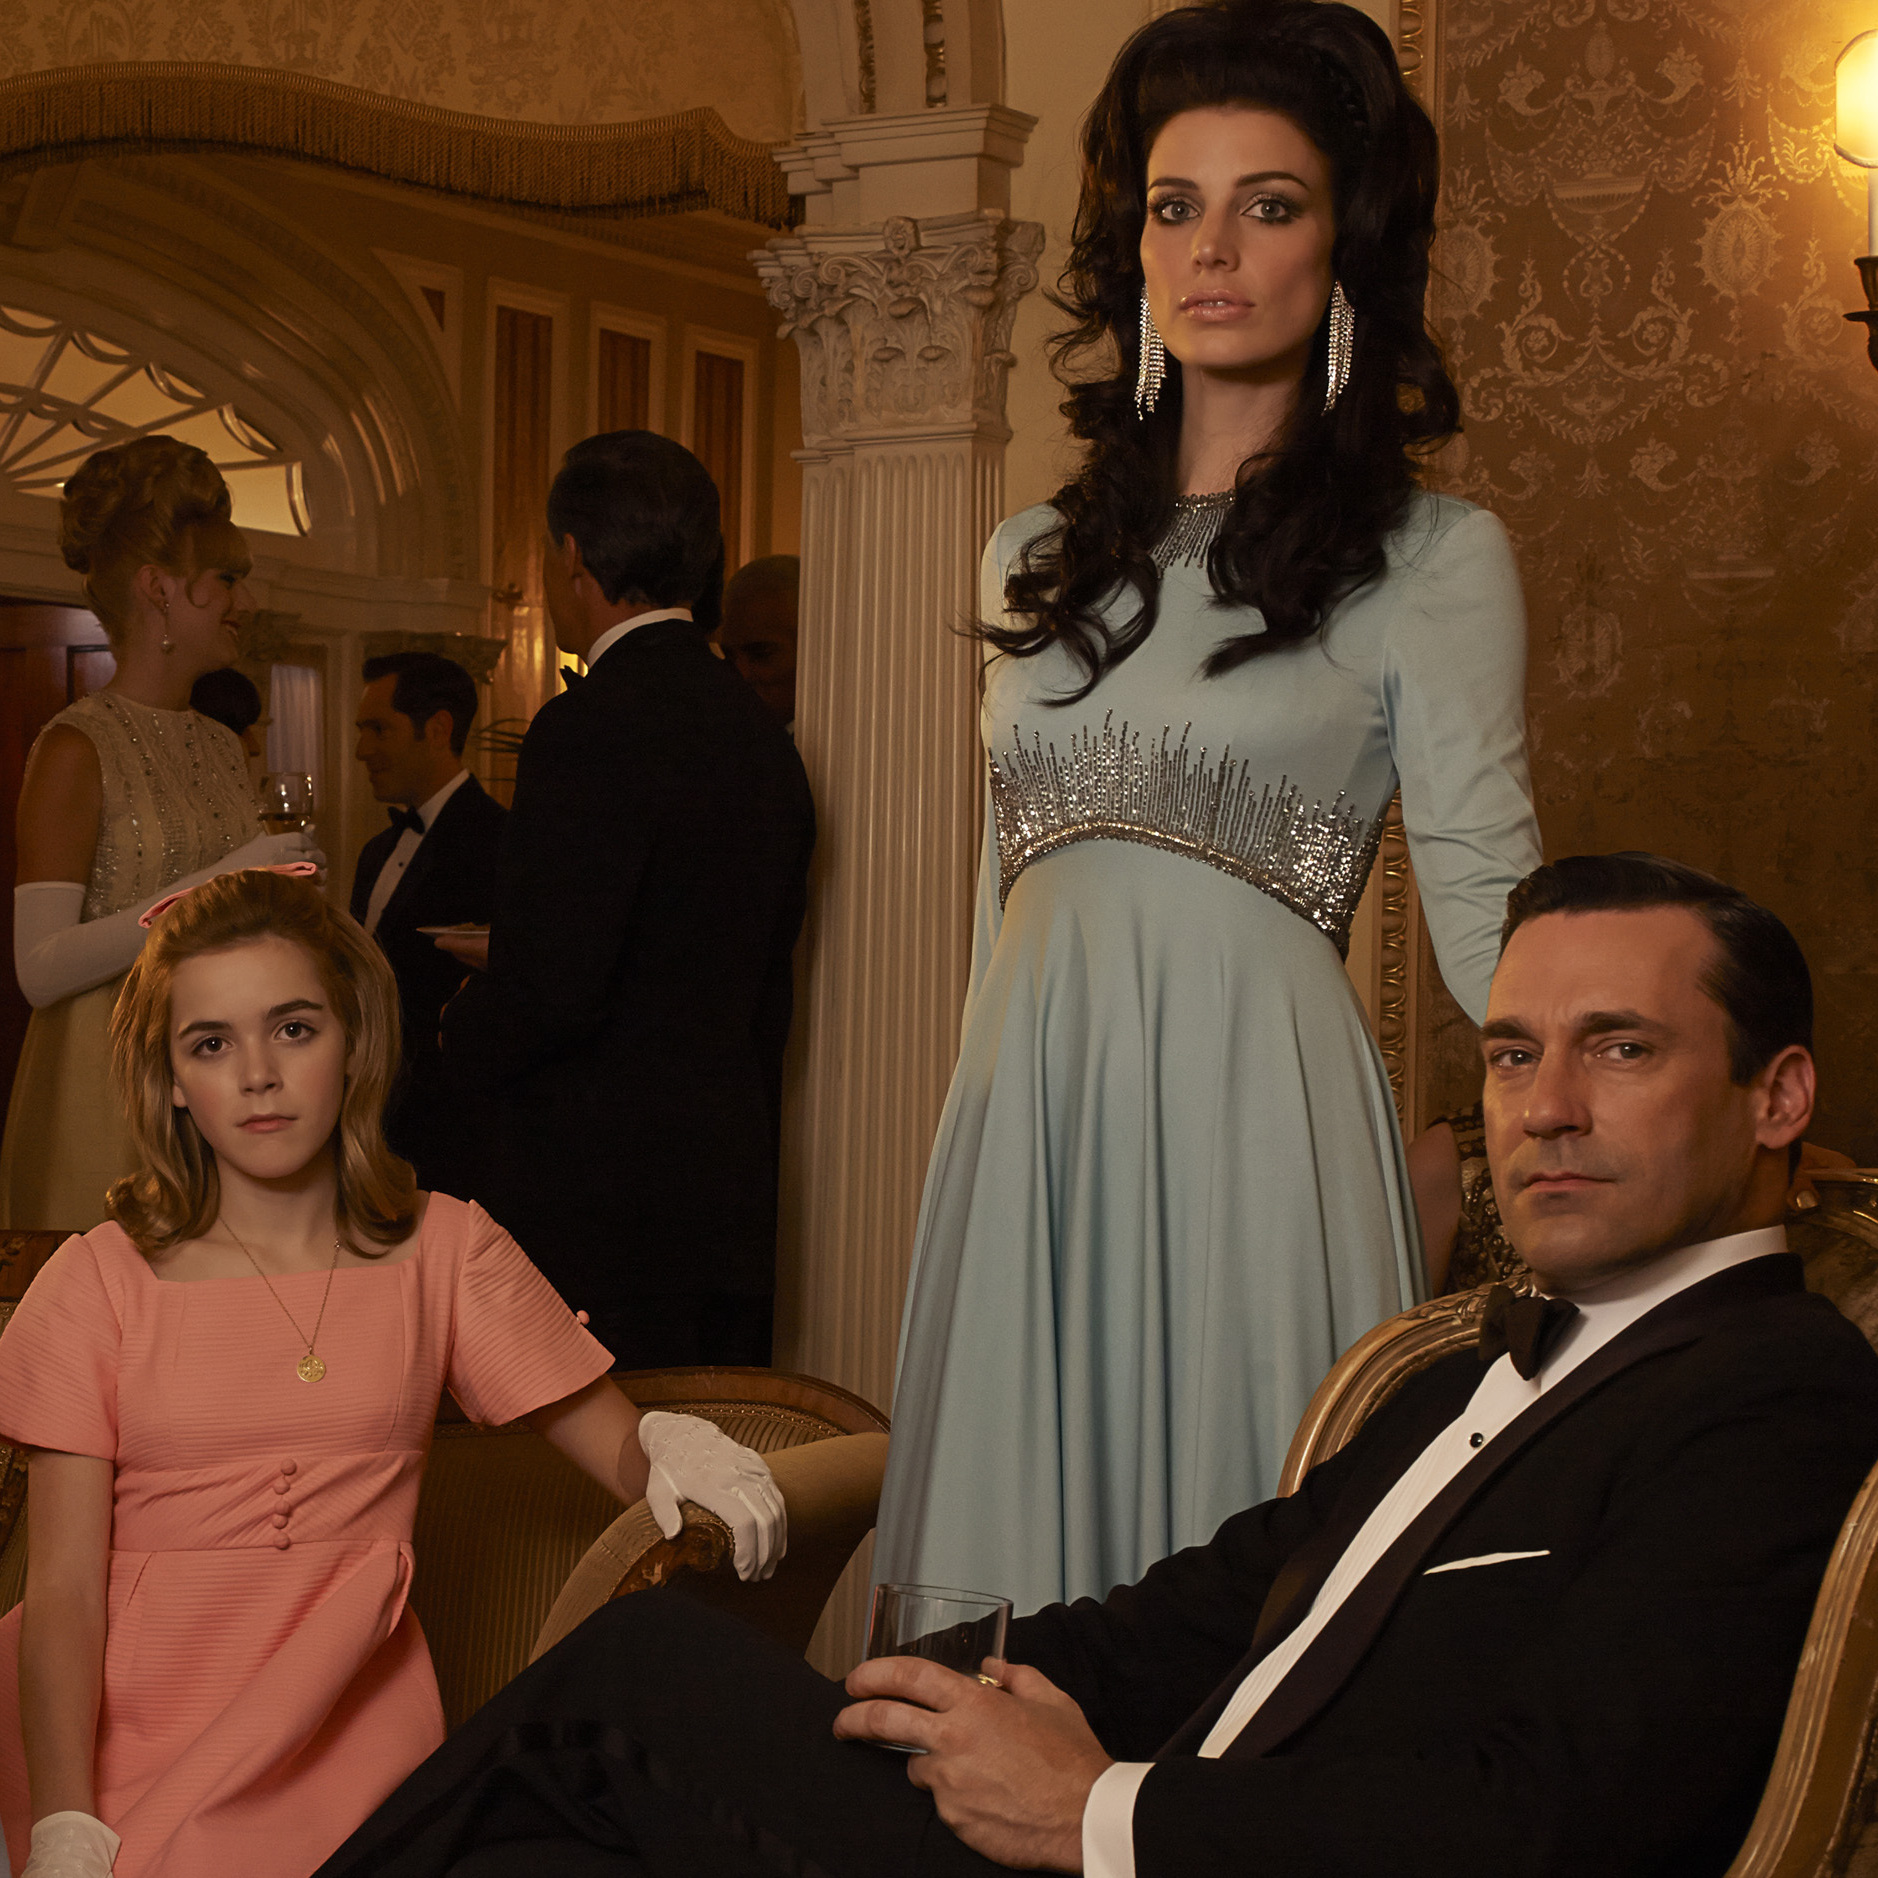 Mad Men's sixth season, which premiered April 7, revolves around (from left) Henry Francis (Christopher Stanley), Bobby Draper (Mason Vale Cotton), Betty Francis (January Jones), Gene Draper (Evan and Ryder Londo), Sally Draper (Kiernan Shipka), Megan Draper (Jessica Pare) and Don Draper (Jon Hamm).